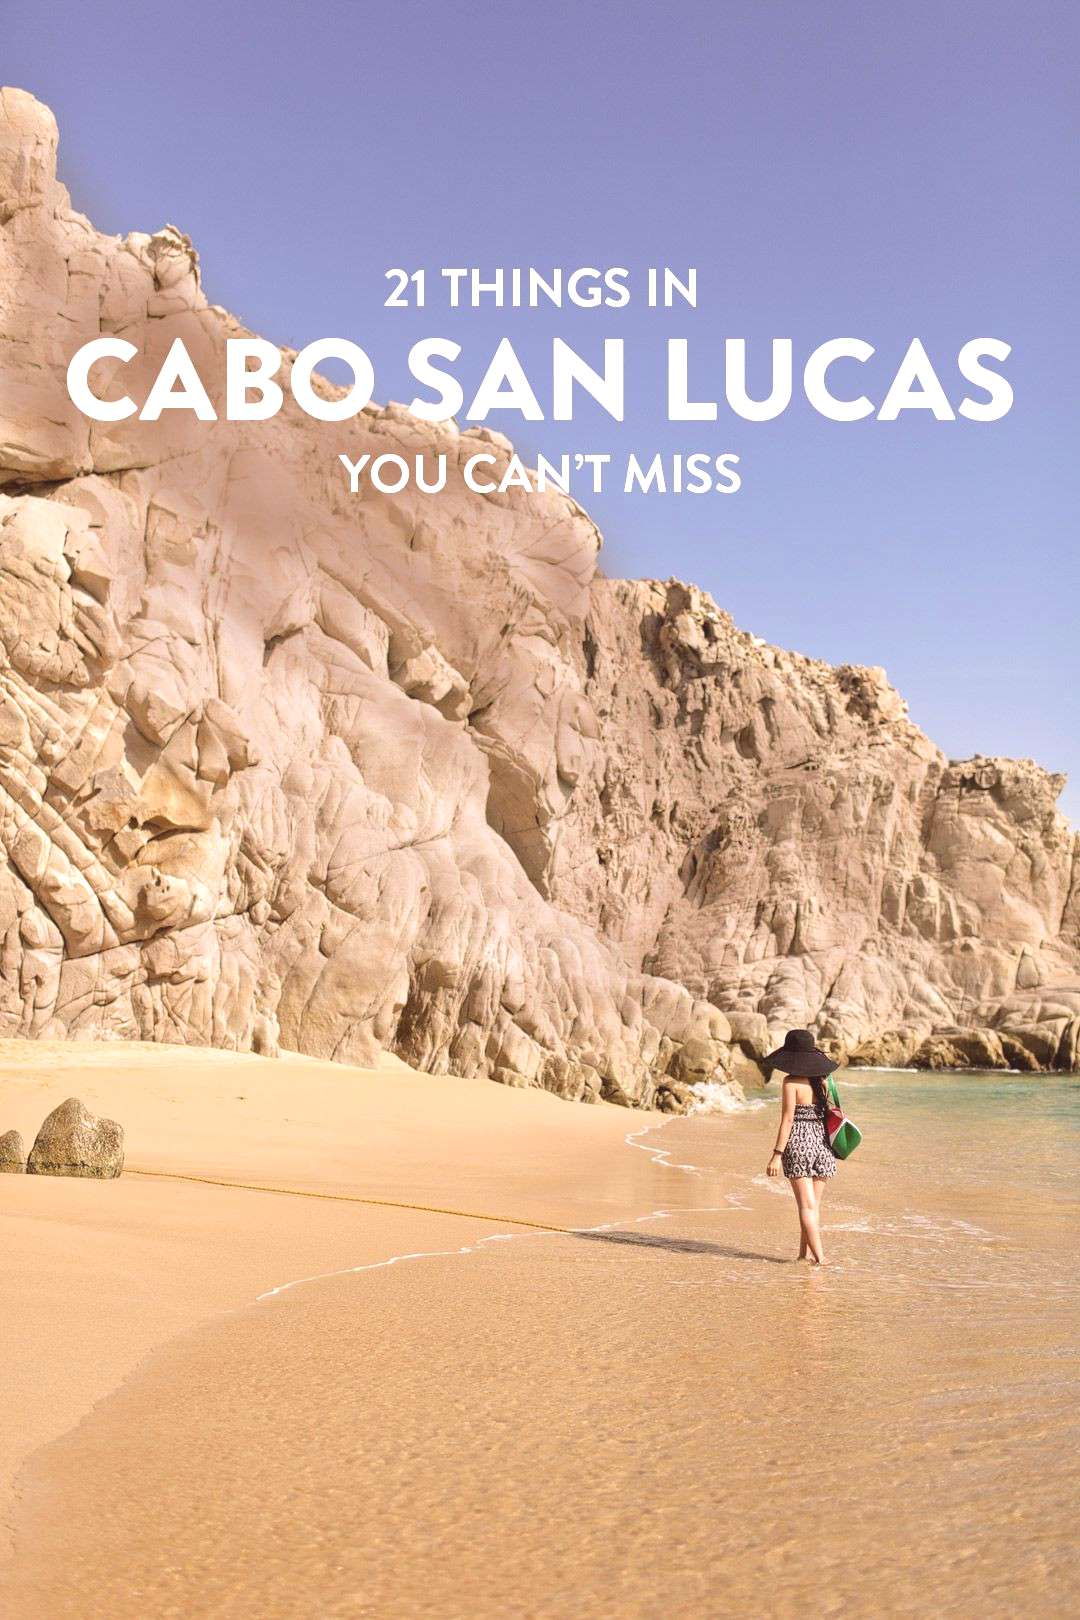 Heading to Cabo? Save this pin and click through to see the 21 best things to do in Cabo San Lucas